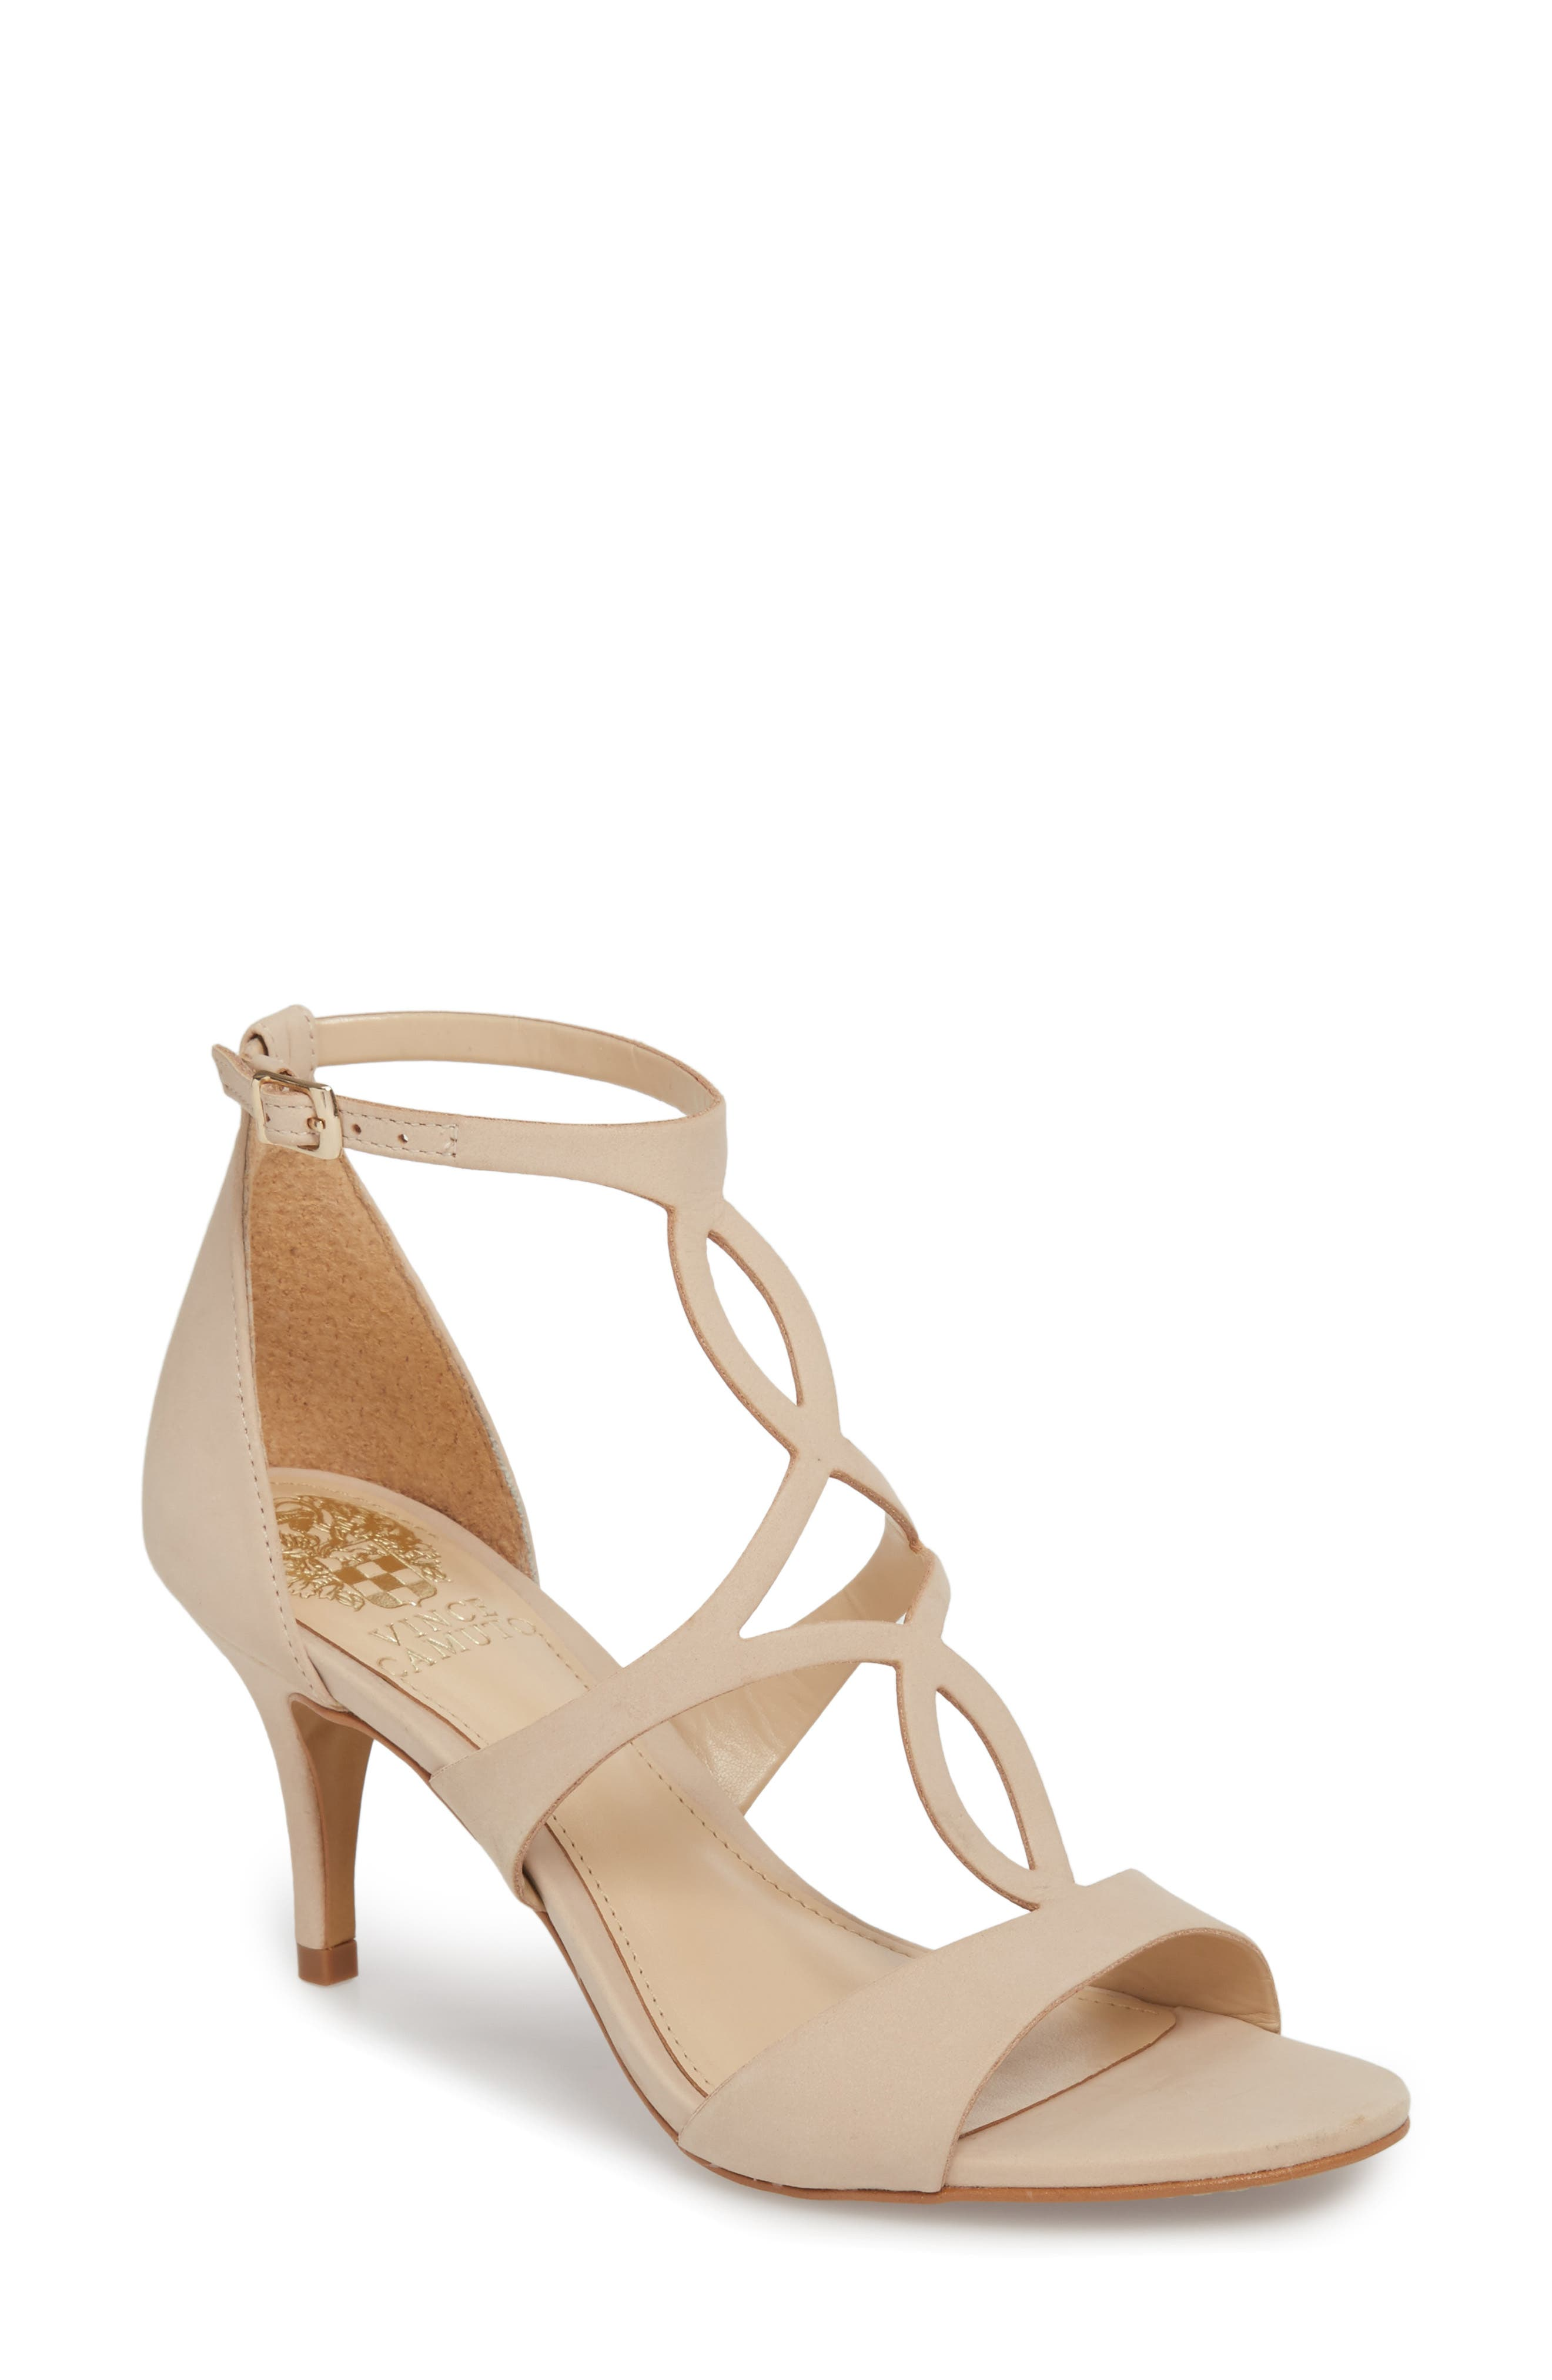 Payto Sandal,                             Main thumbnail 1, color,                             NUDE LEATHER